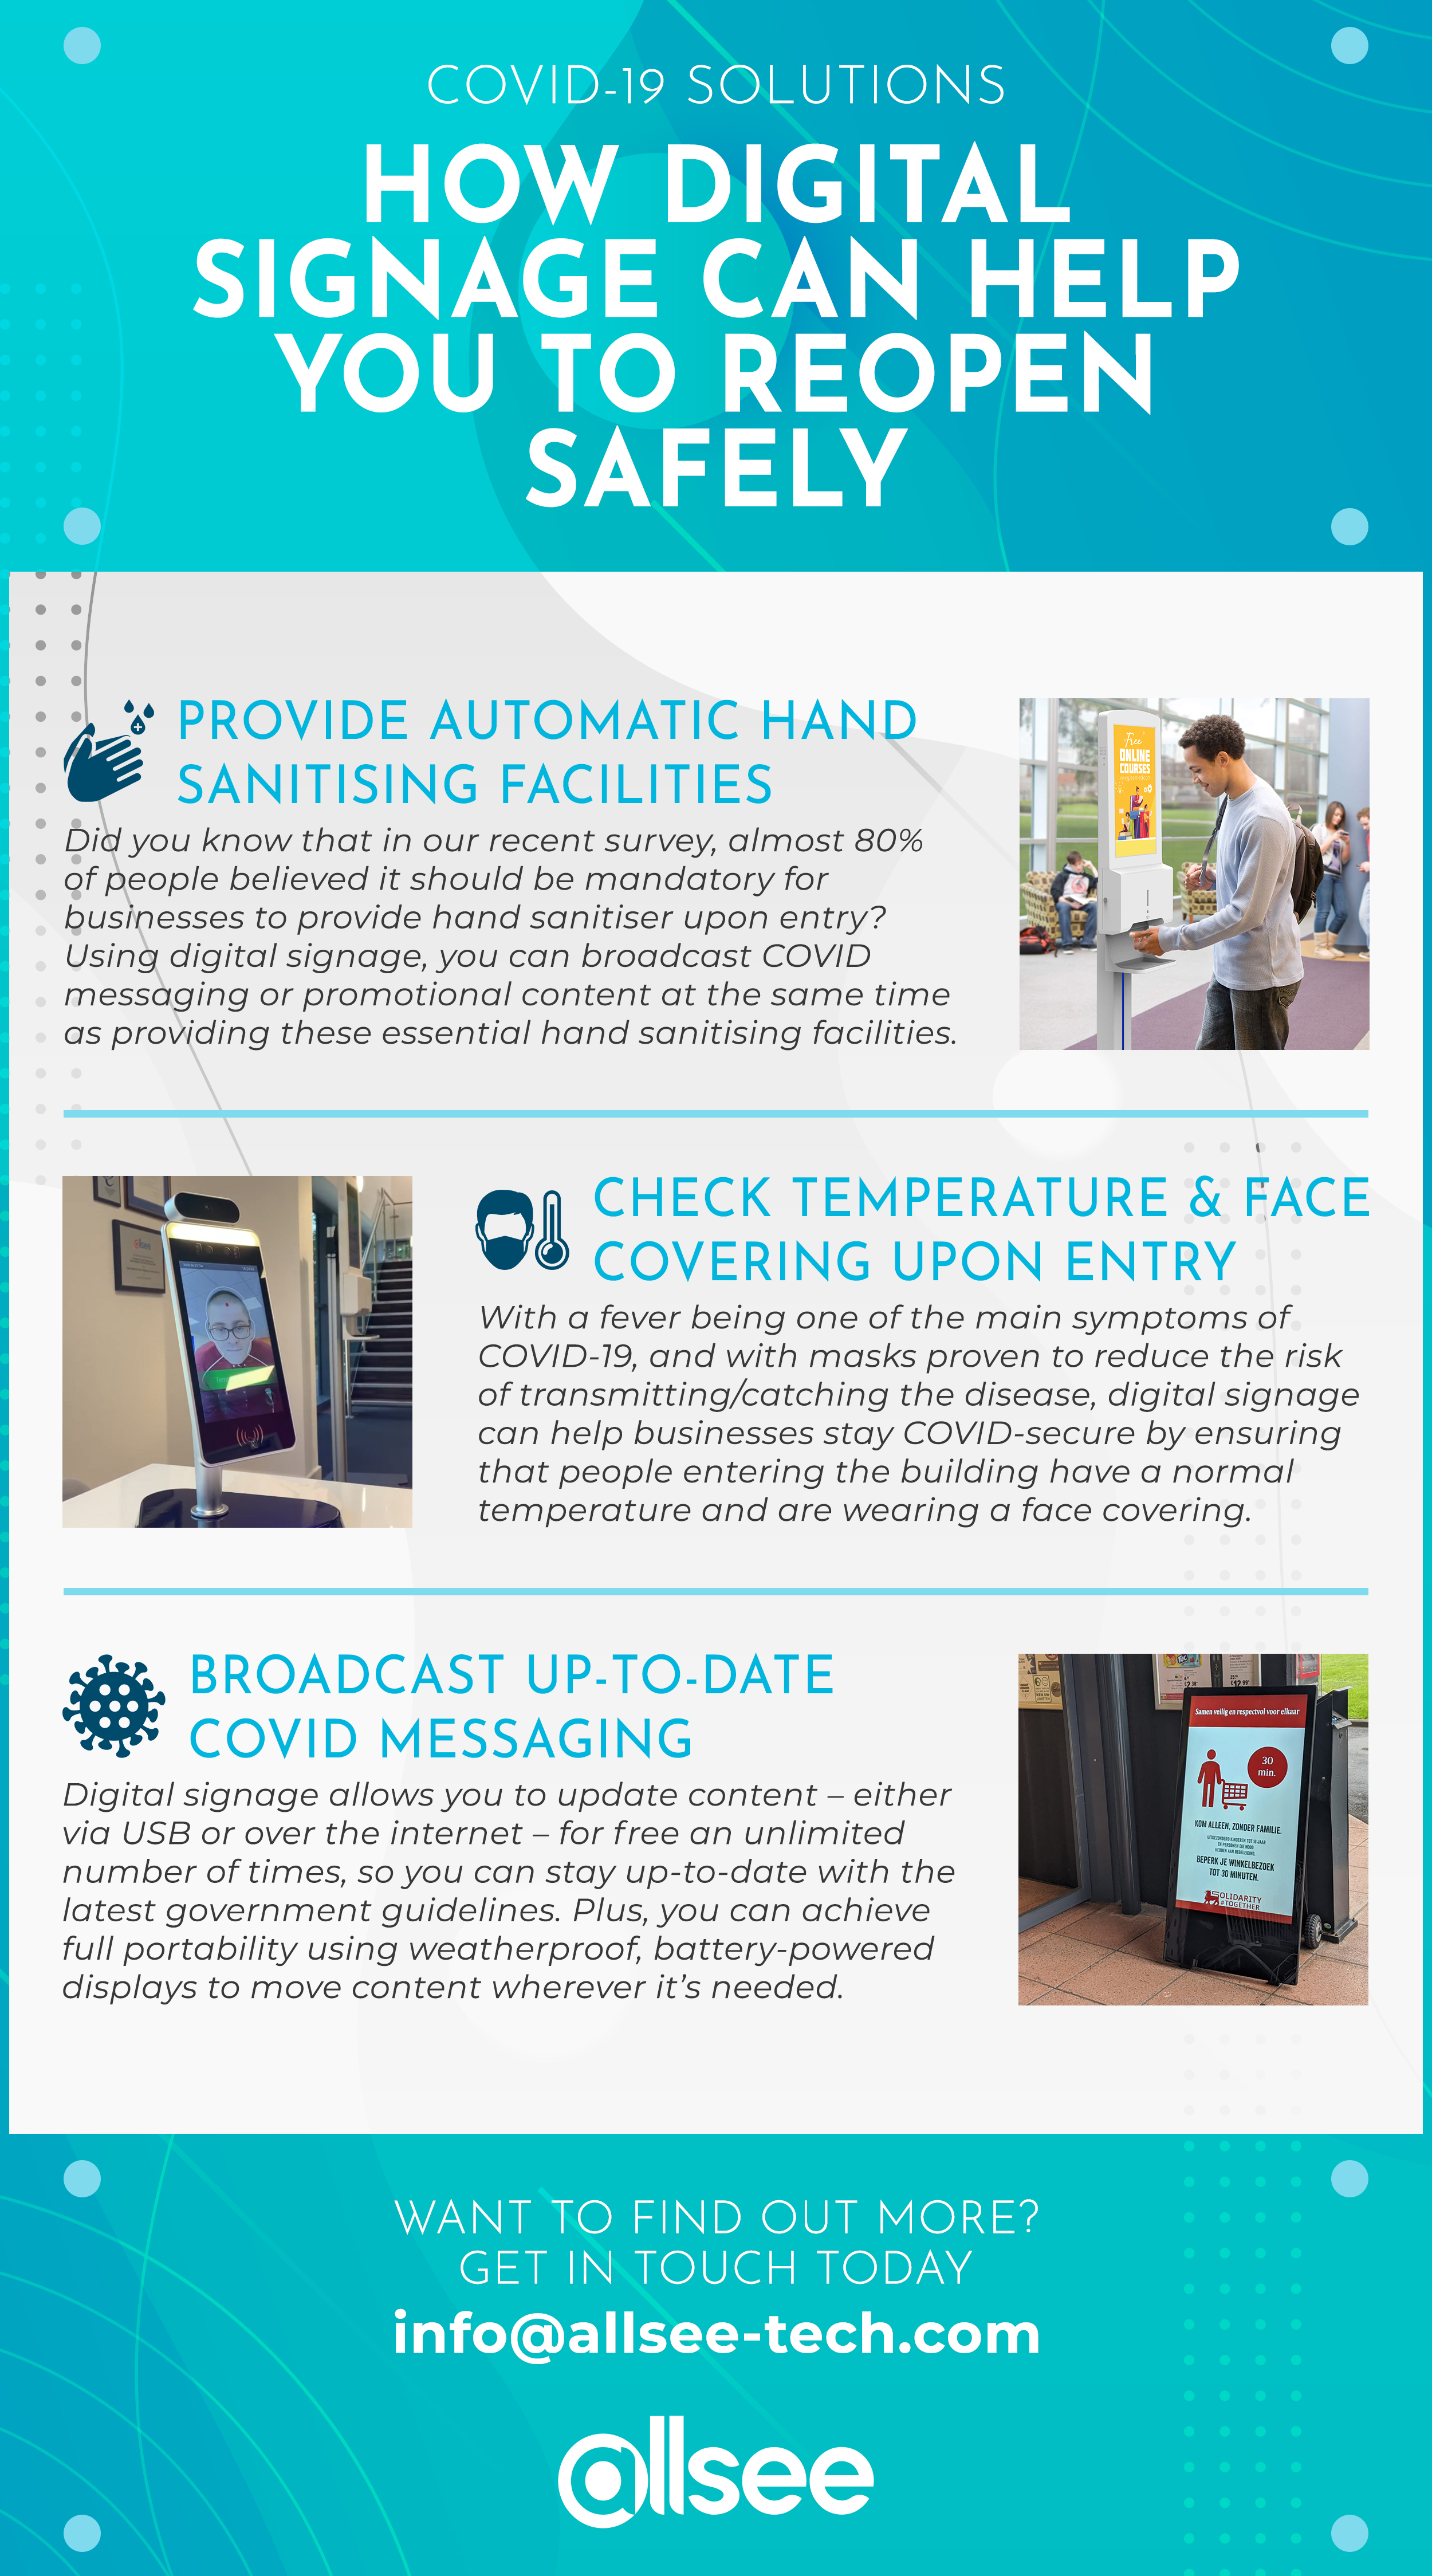 'How Digital Signage Can Help You to Reopen Safely' infographic